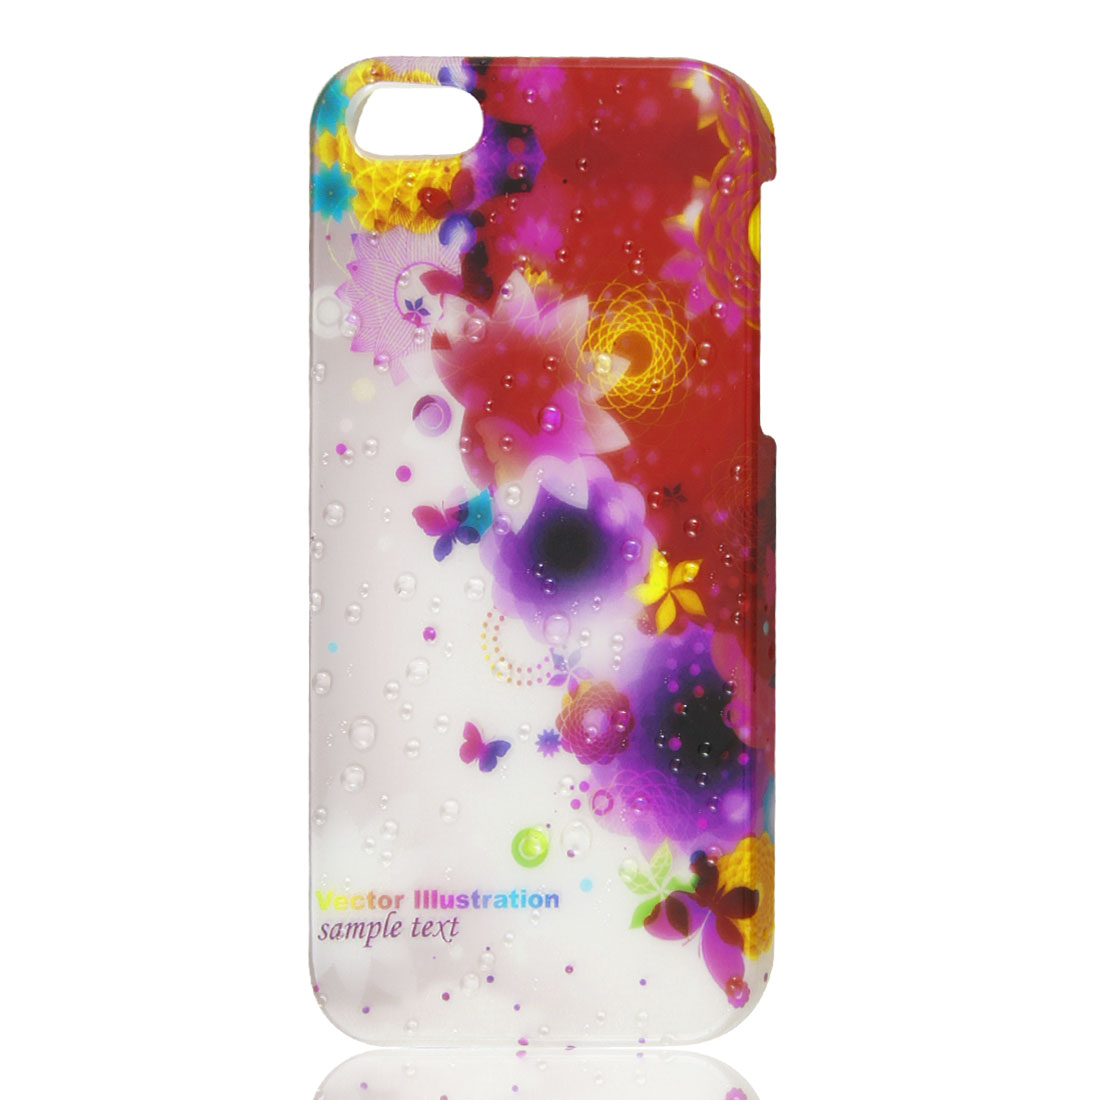 Multicolor Floral 3D Water Drop Raindrop Hard Back Case Cover for iPhone 5 5G